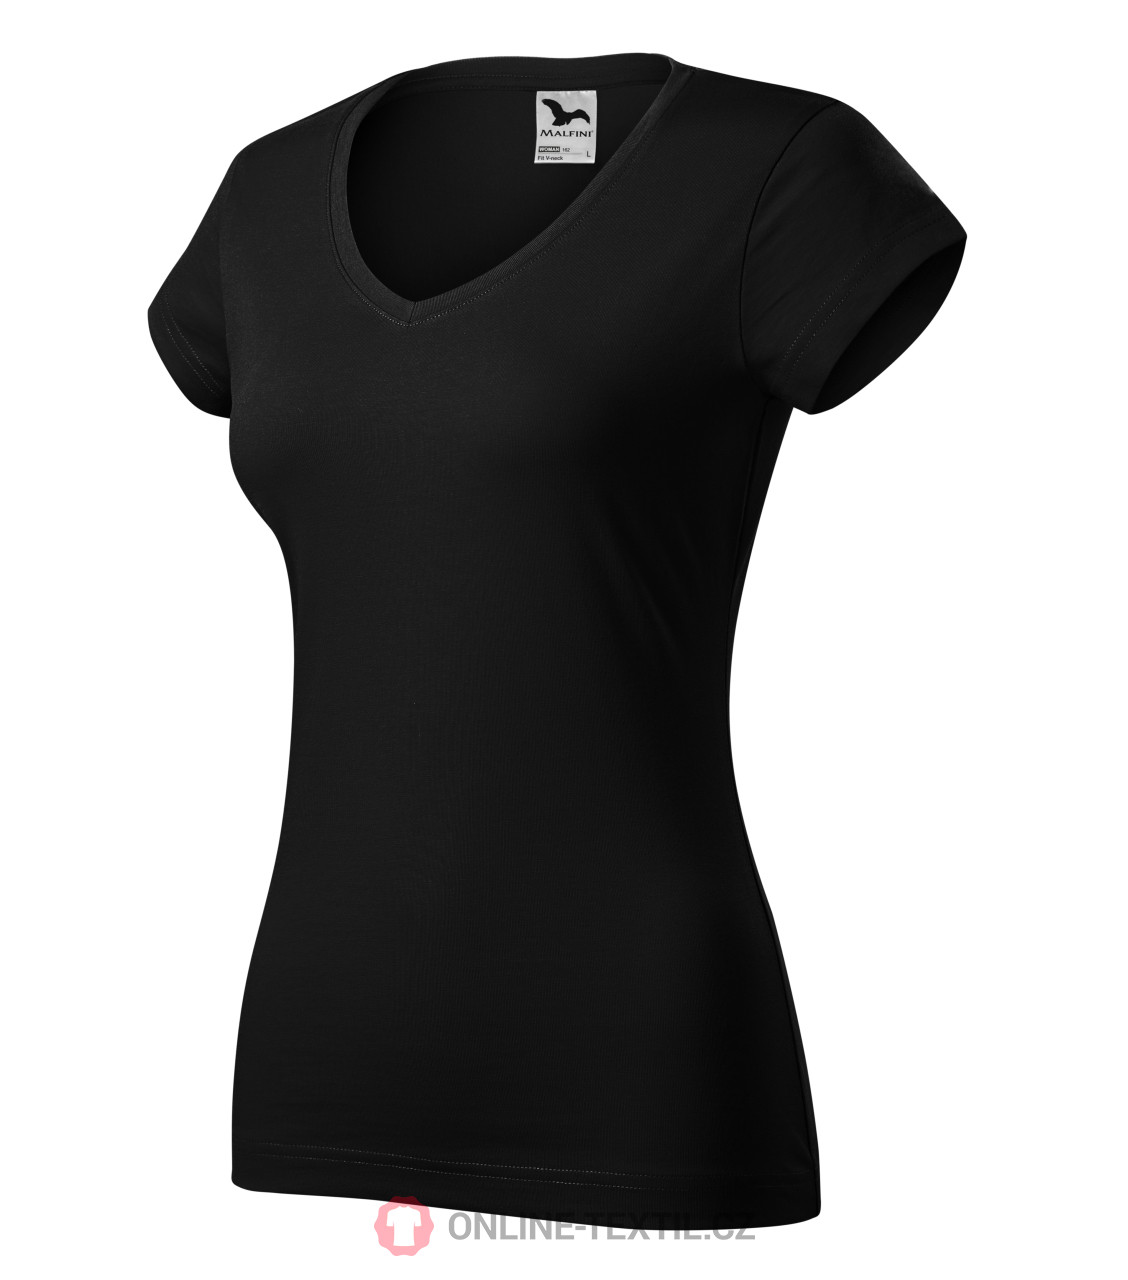 f65b6655 ADLER CZECH Heavyweight ladies T-shirt Fit V-neck 162 - černá from ...